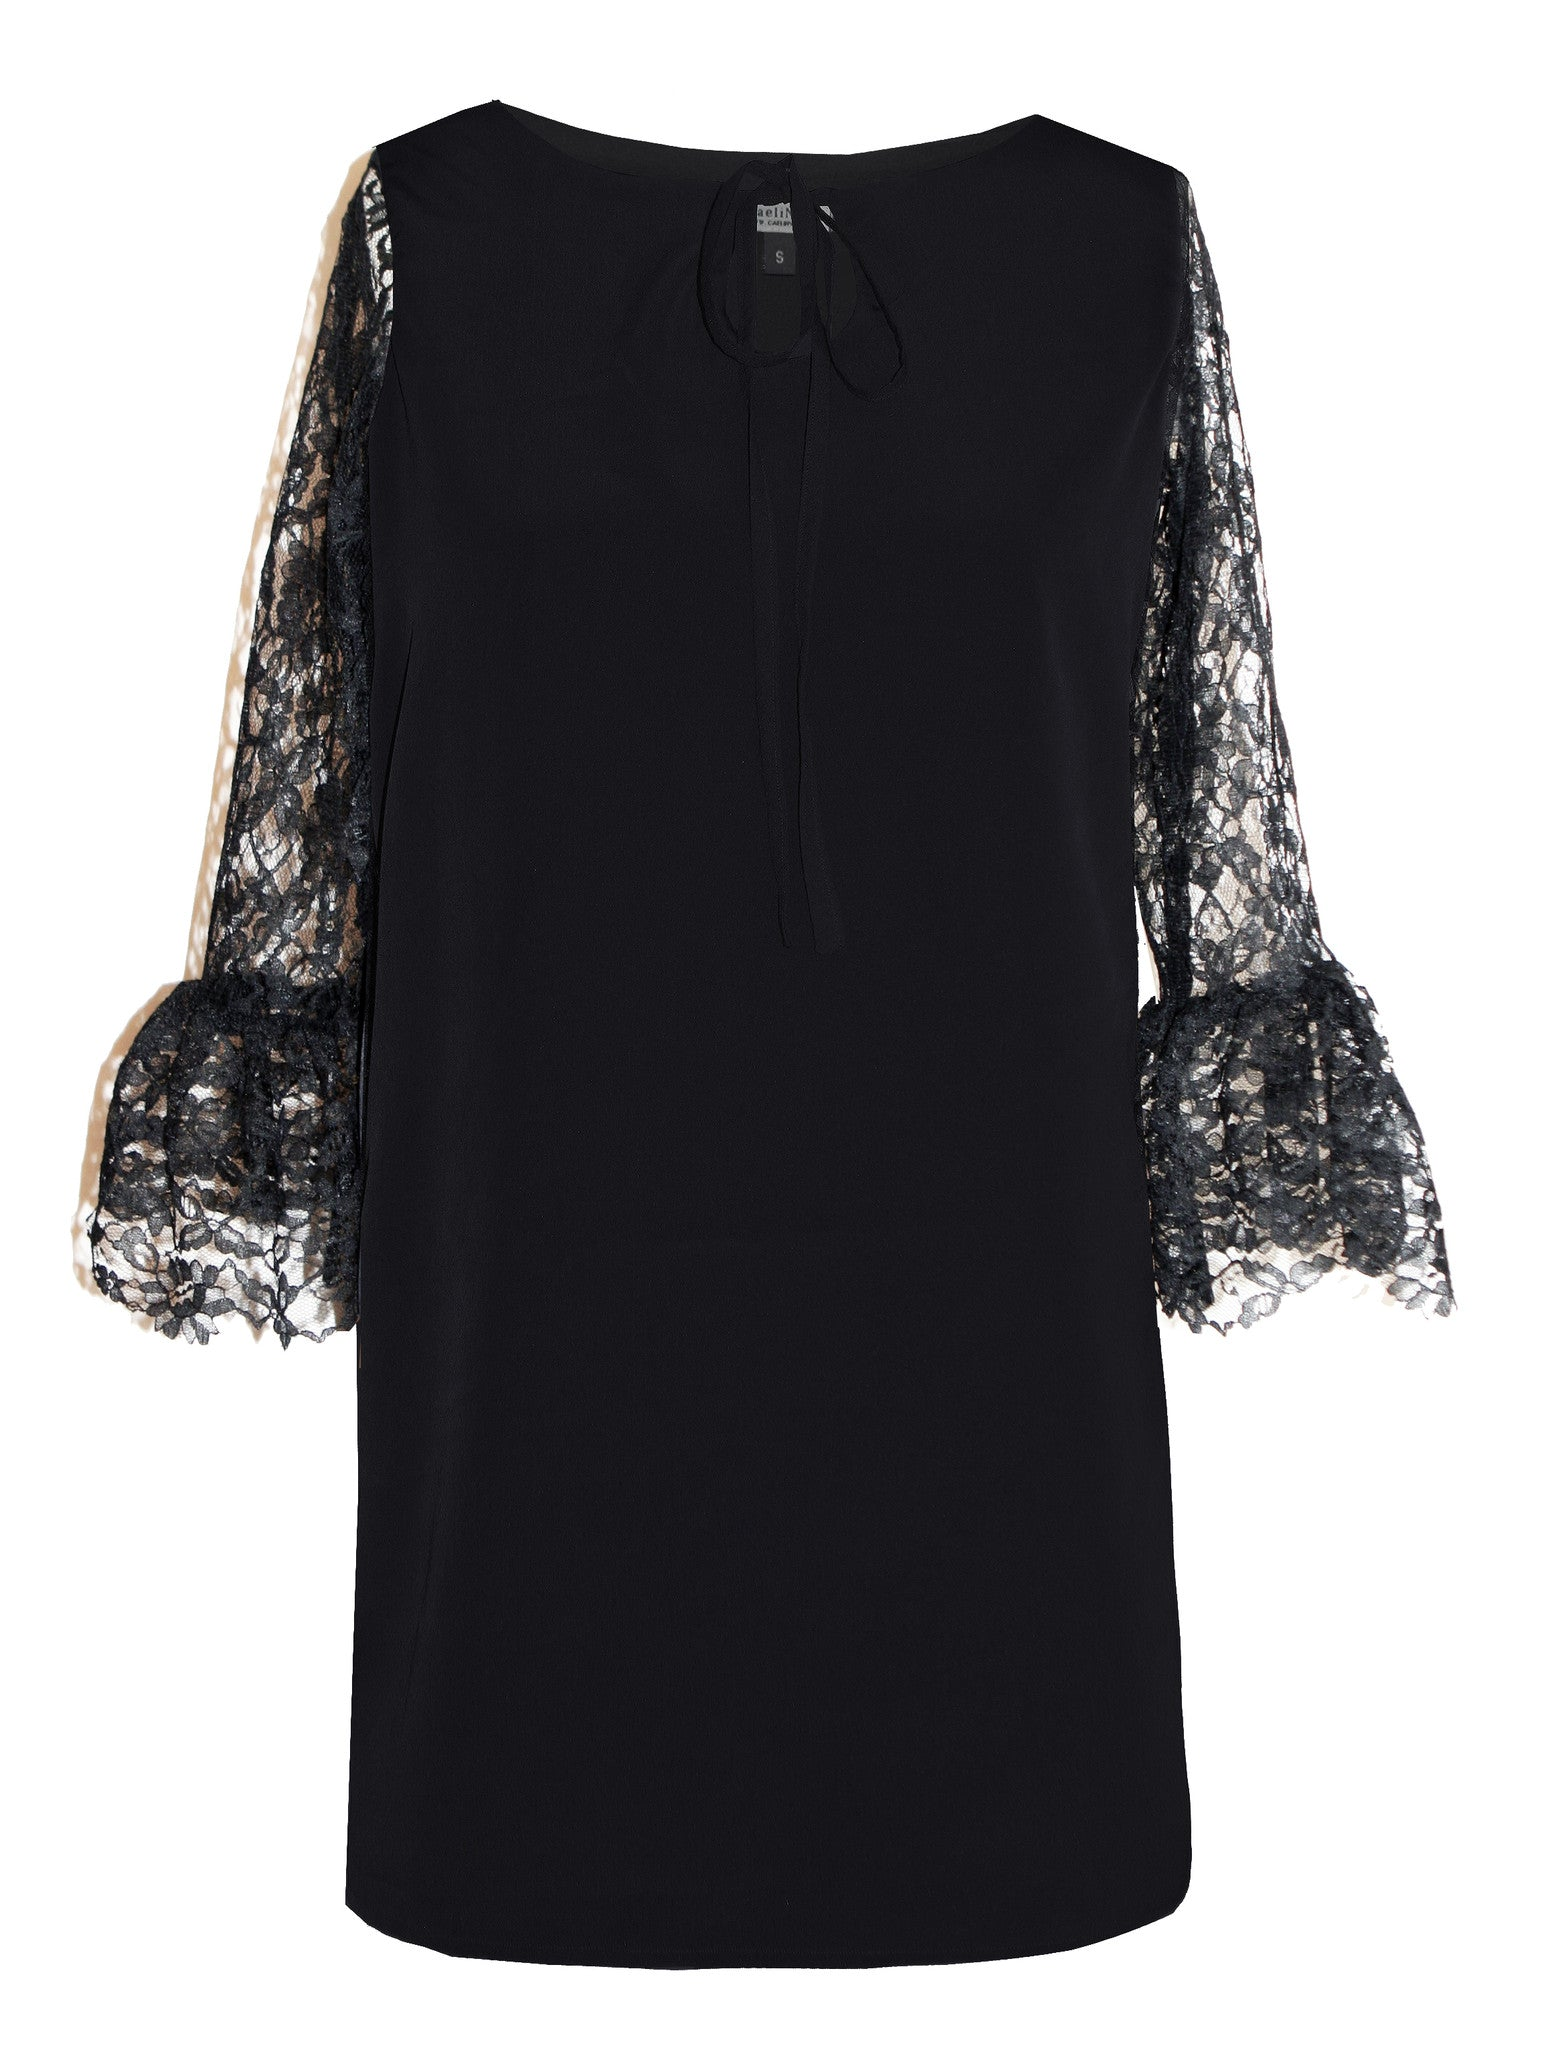 z Catriona Dress in Black